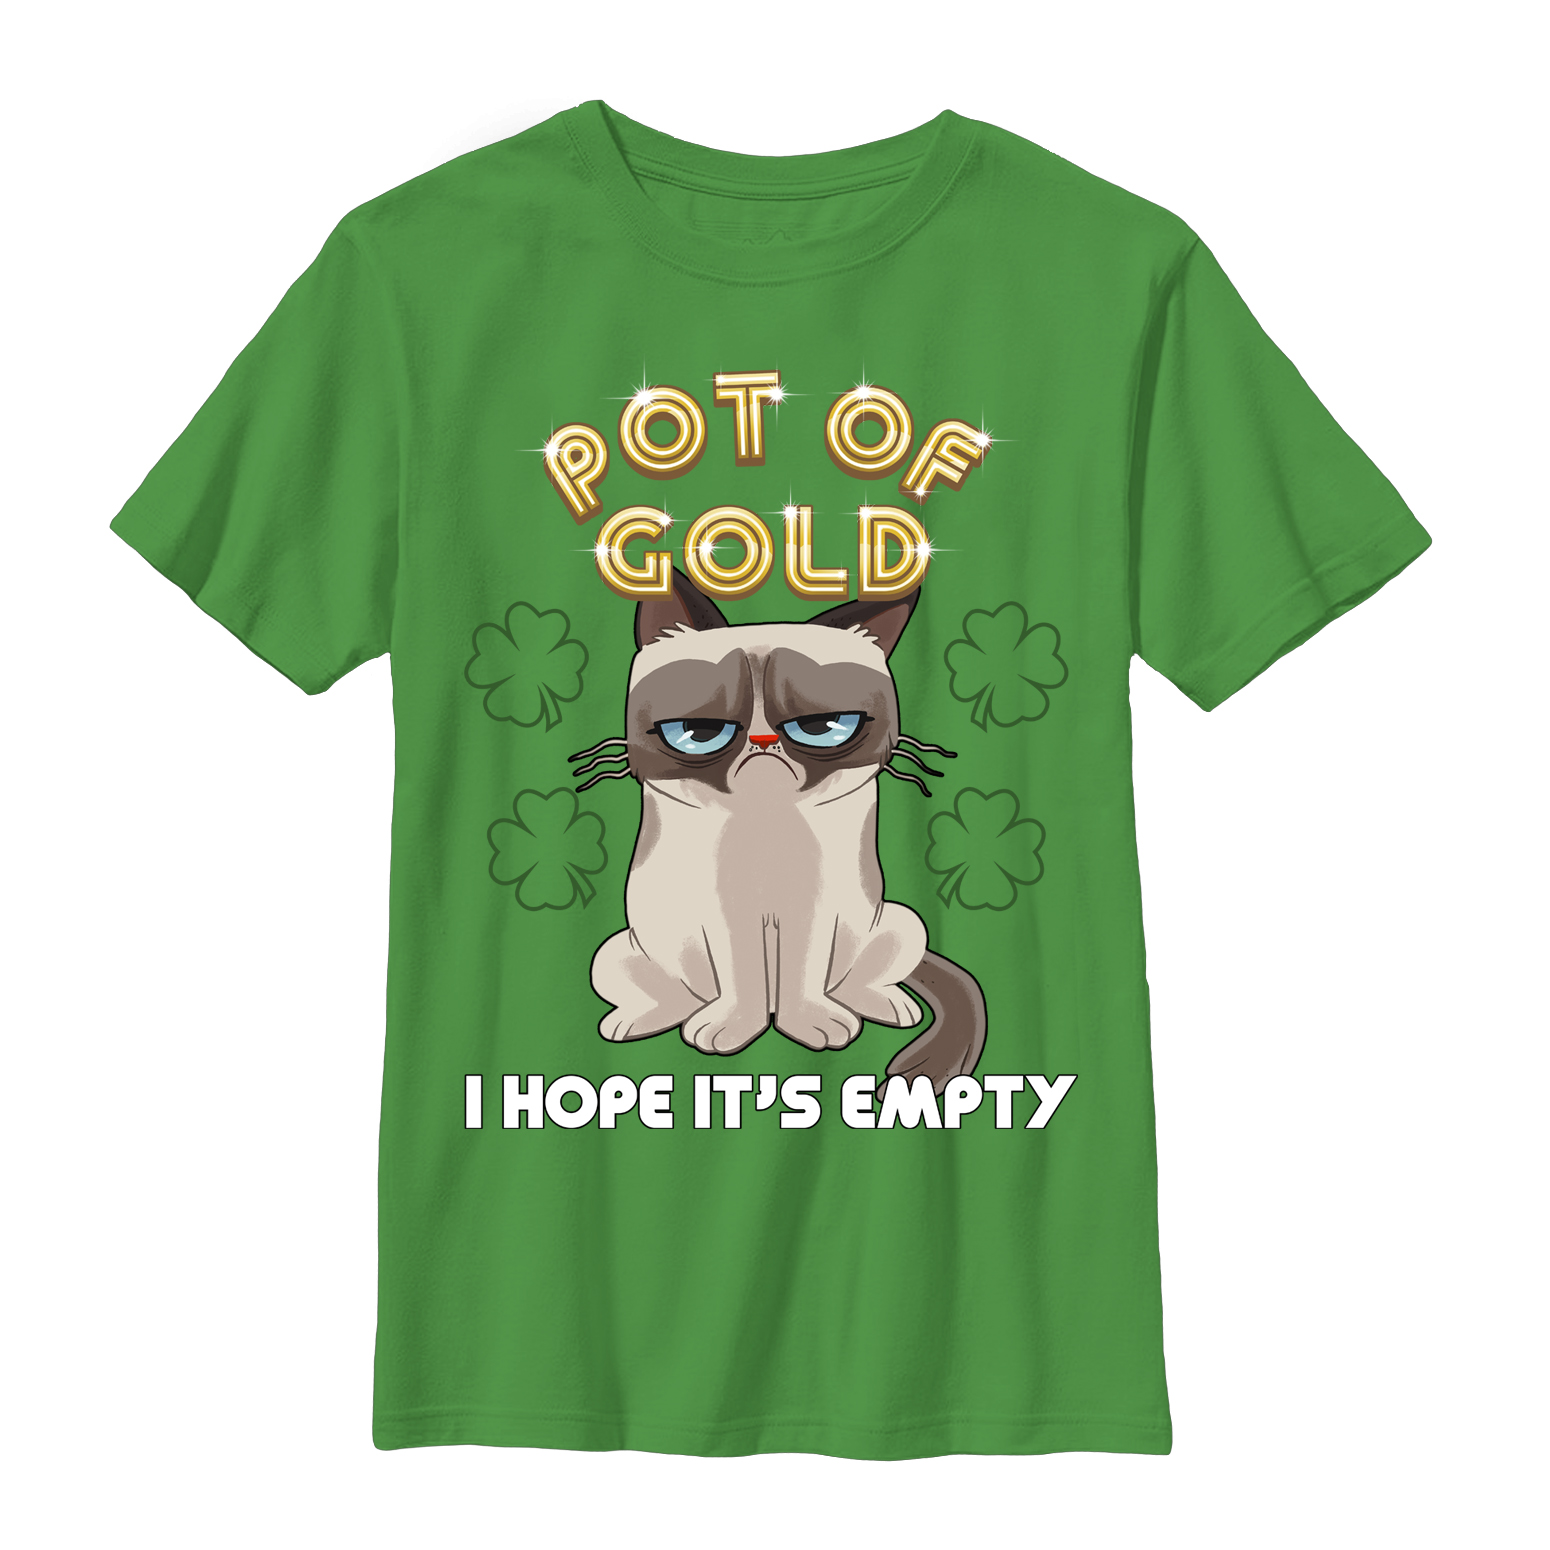 Grumpy Cat Boys' Empty Pot of Gold T-Shirt